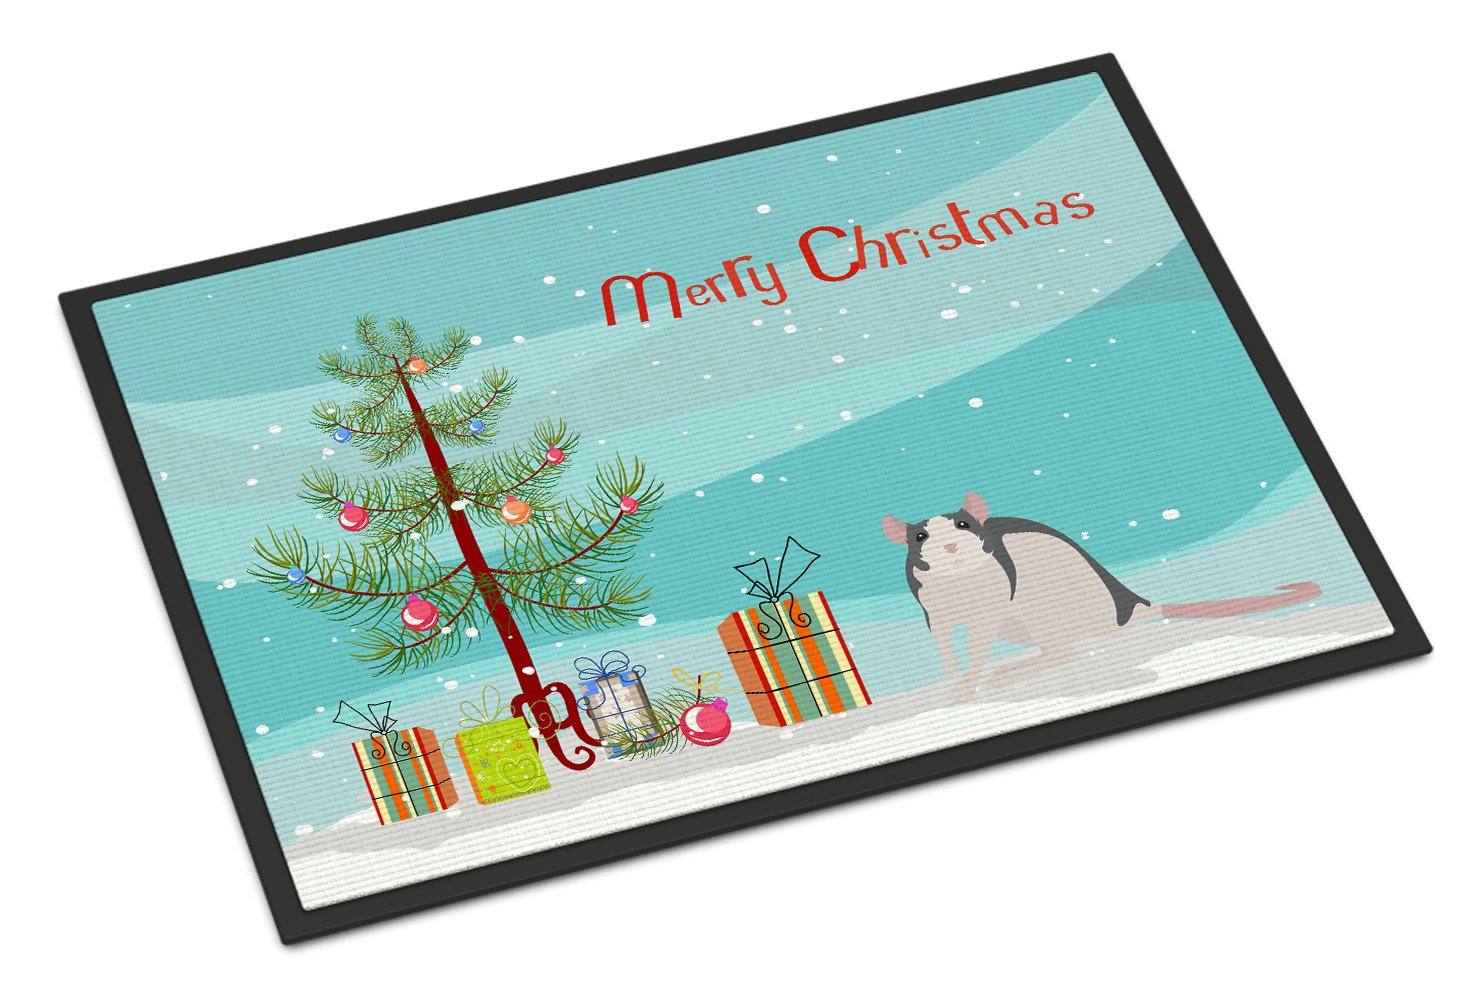 Husky Rat Merry Christmas Indoor or Outdoor Mat 24x36 CK4473JMAT by Caroline's Treasures